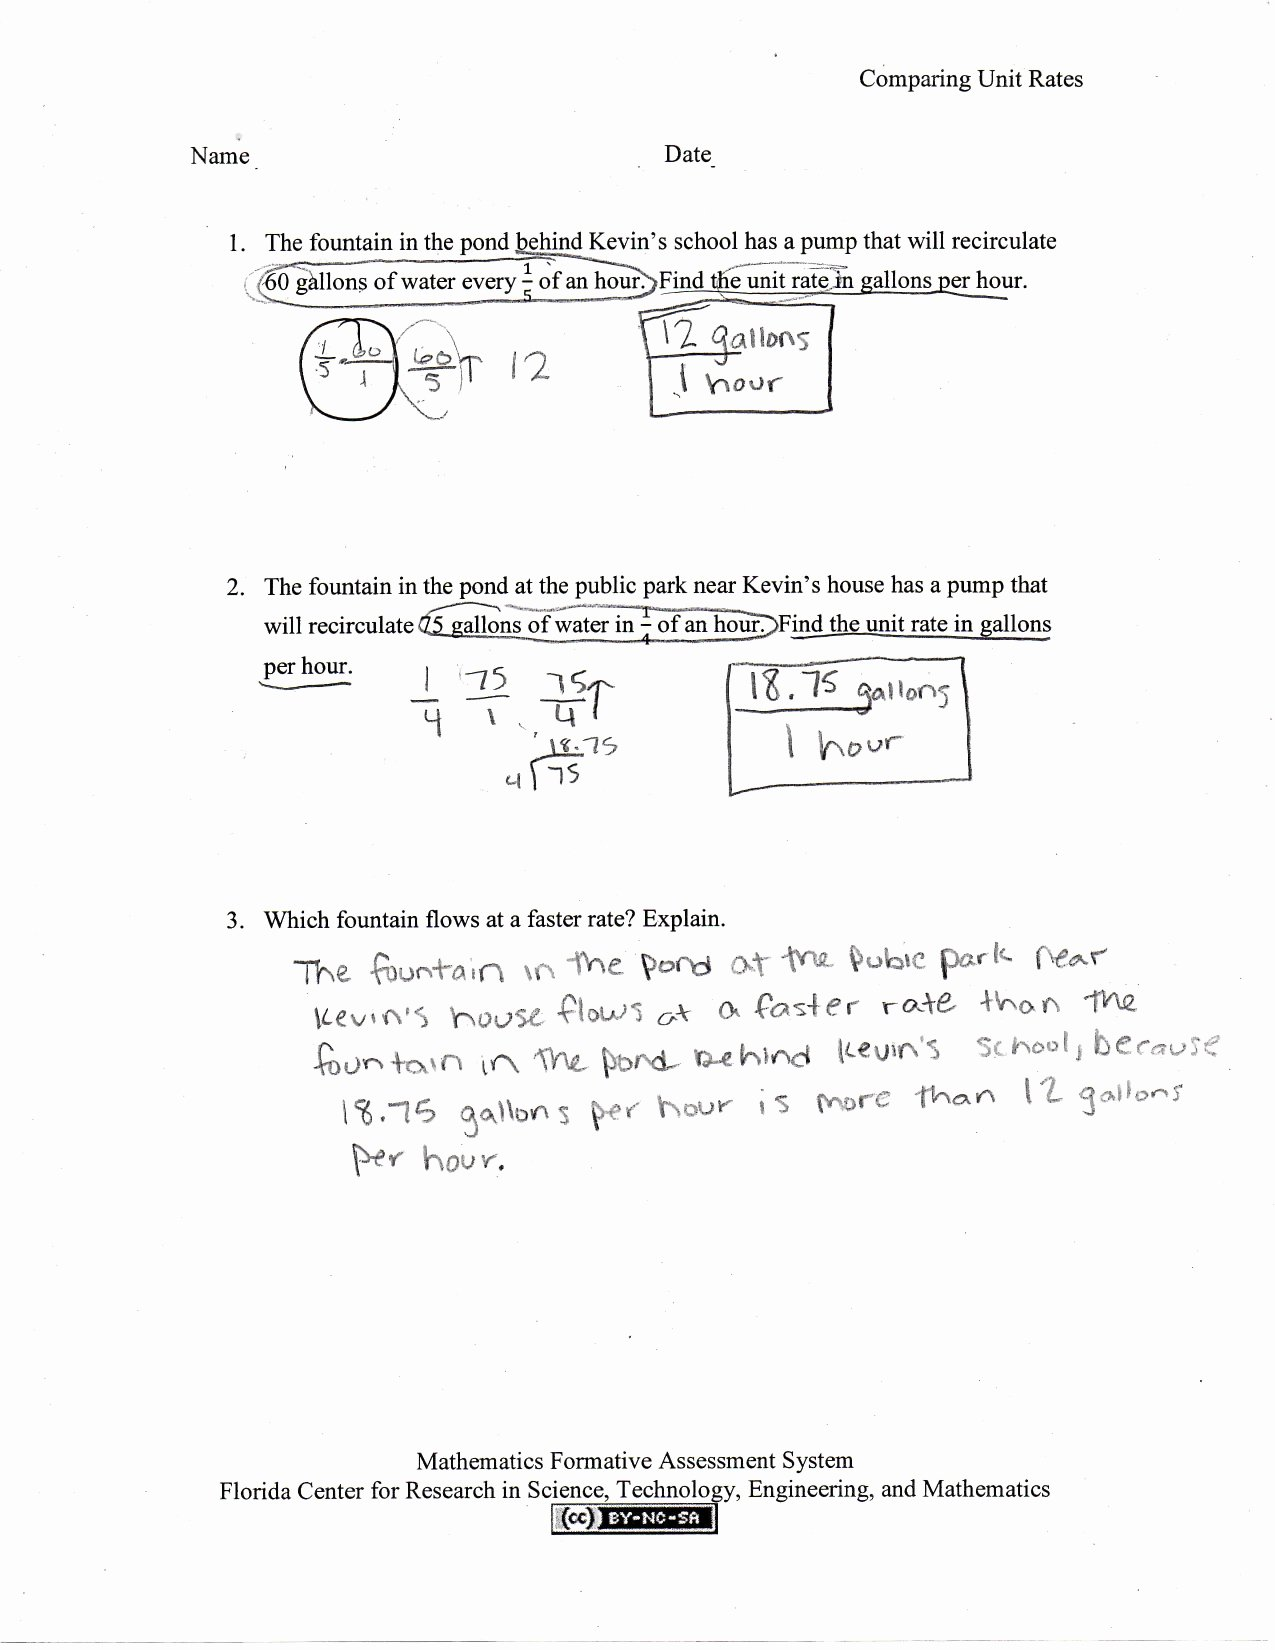 Finding Unit Rates Worksheet Inspirational Paring Unit Rates